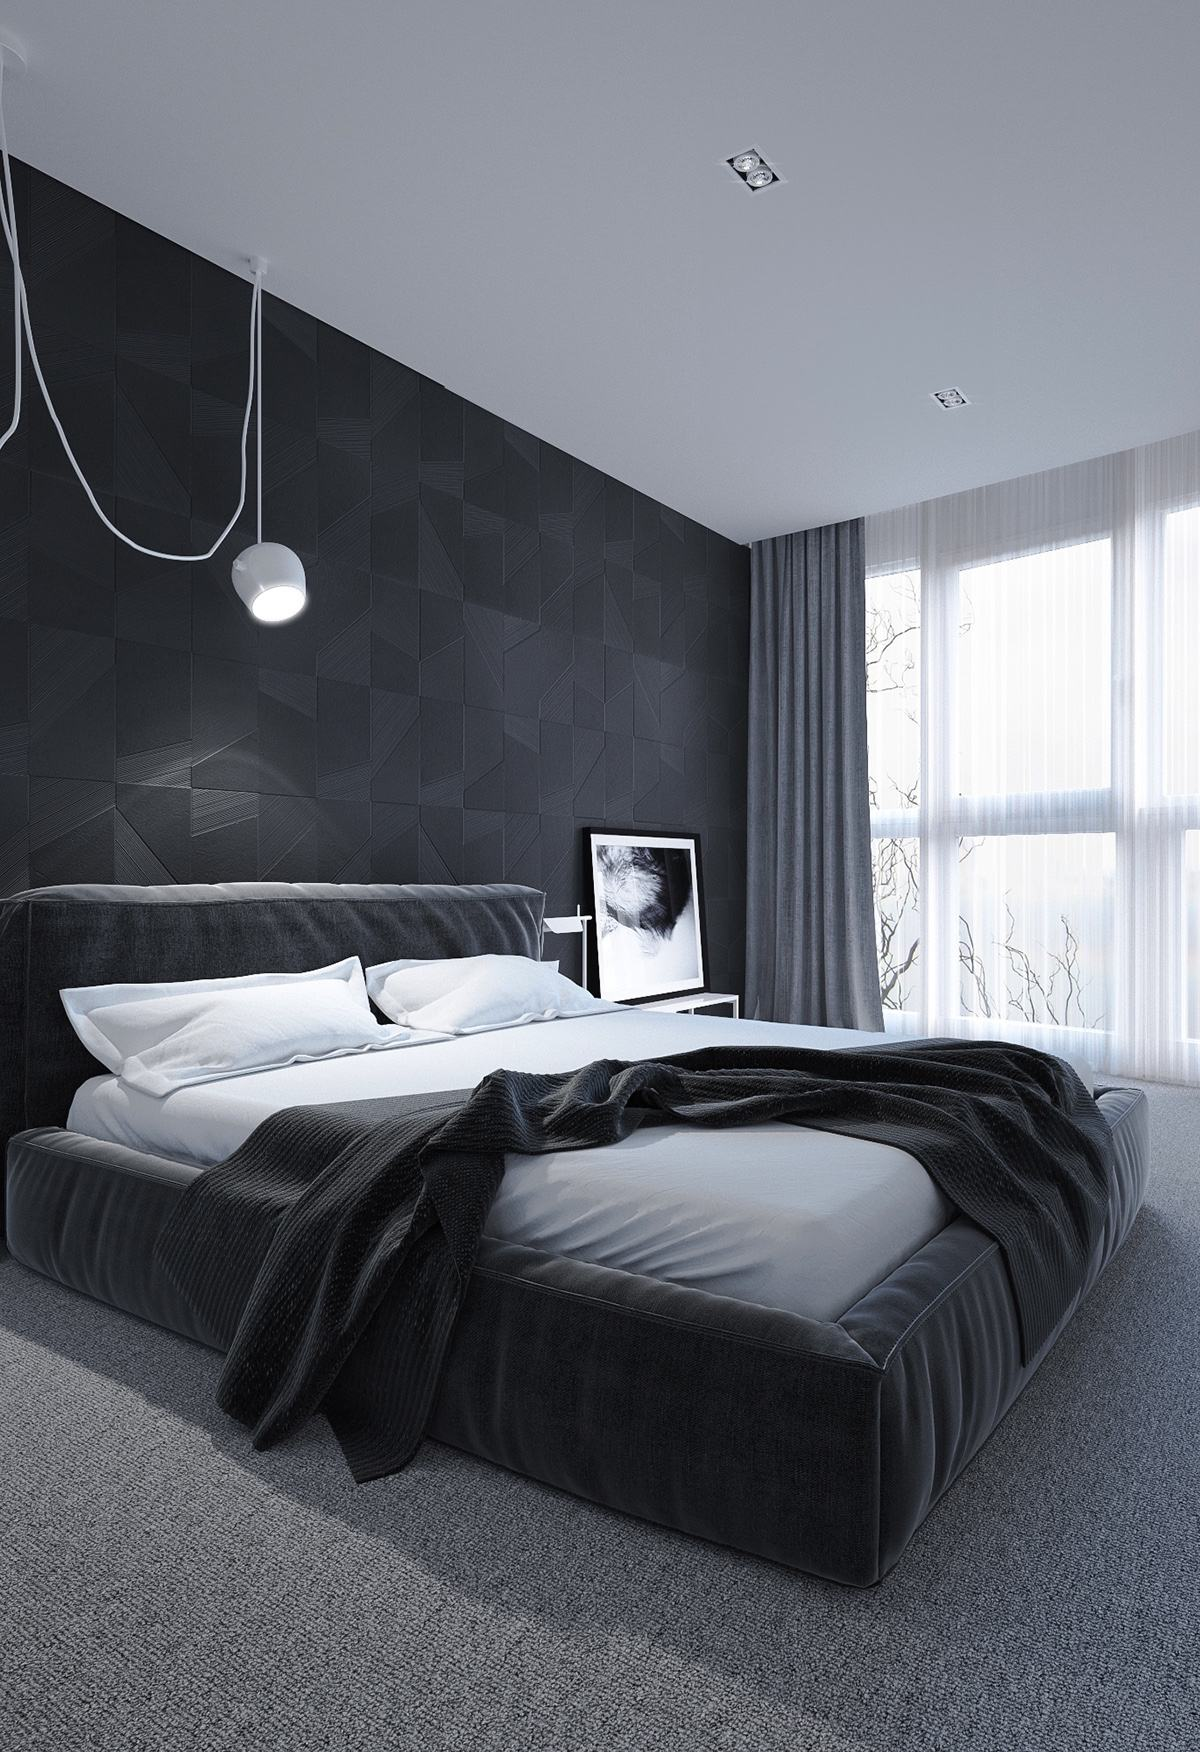 6 dark bedrooms designs to inspire sweet dreams. Black Bedroom Furniture Sets. Home Design Ideas